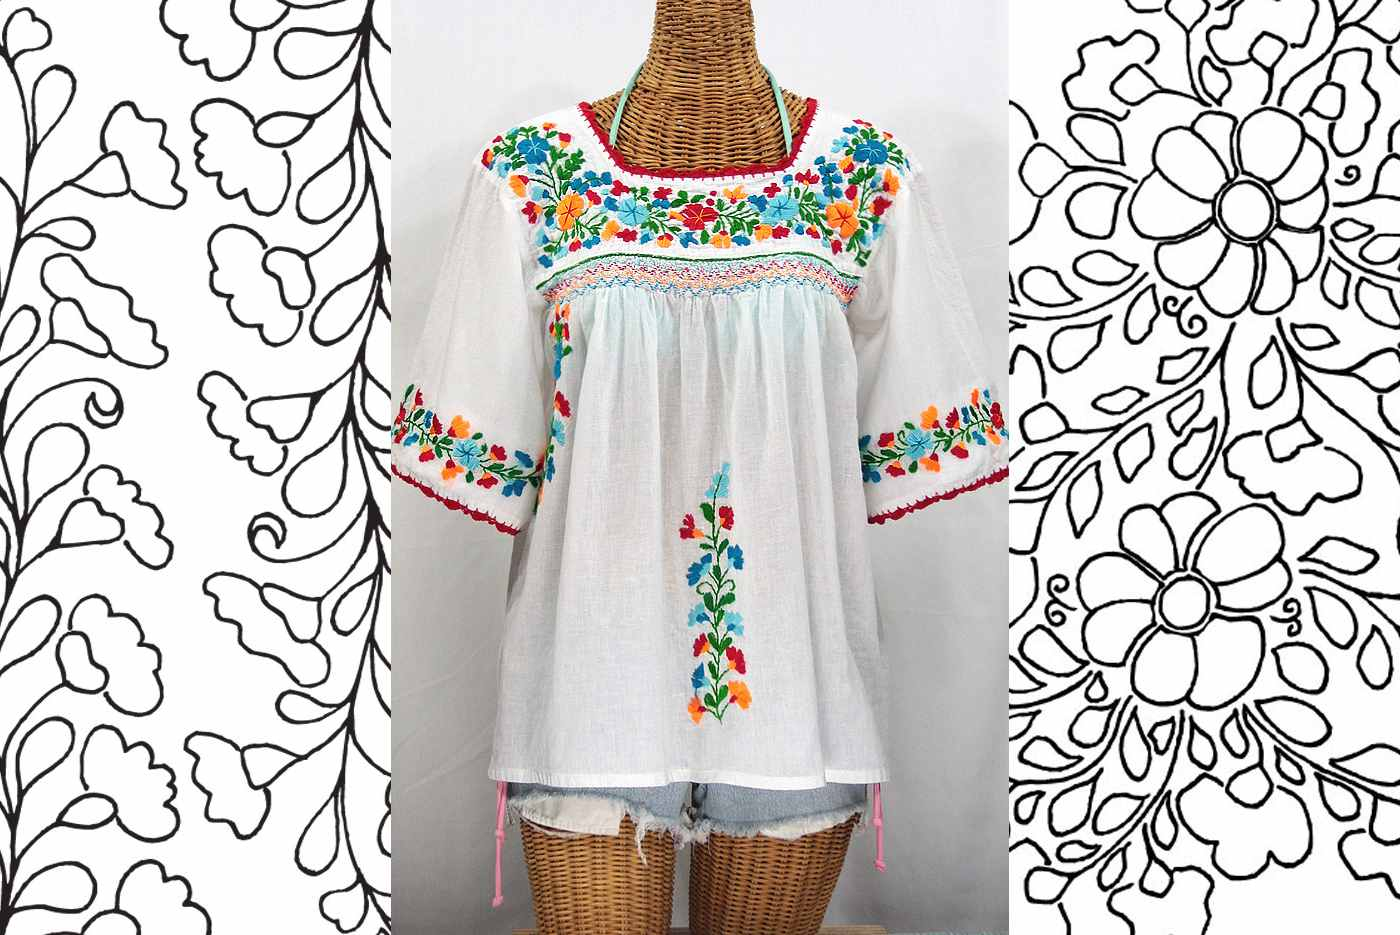 Embroidery Designs Patterns Ethnic And Multicultural Embroidery Patterns